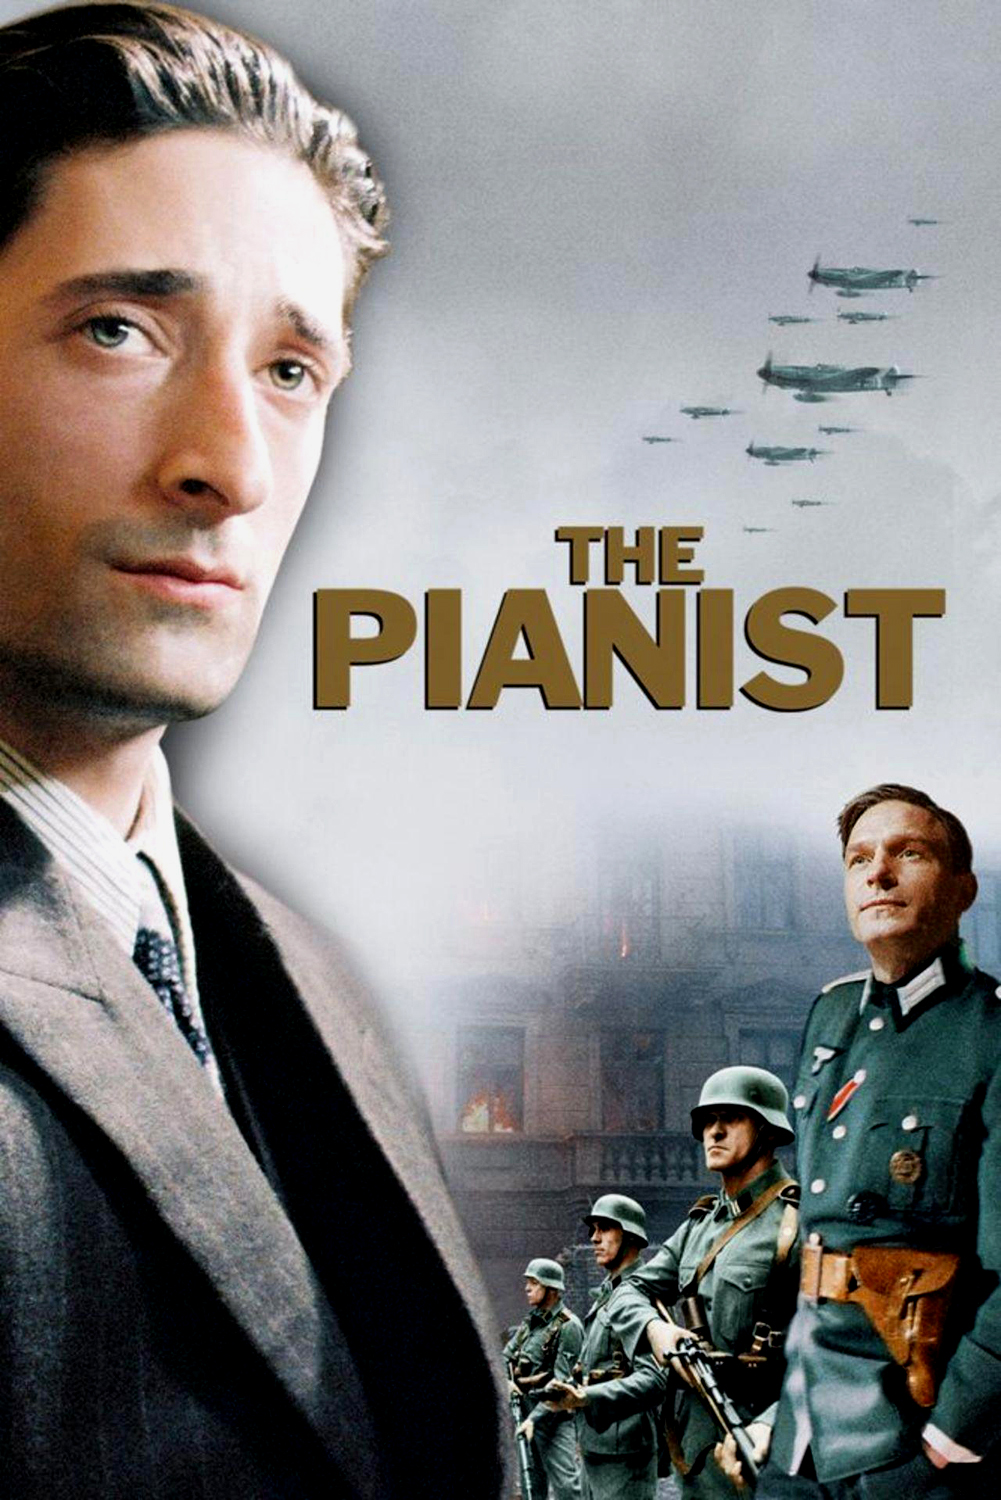 The Pianist (2002) - Directed by: Roman PolanskiStarring: Adrien Brody, Thomas Kretschmann, Frank FinlayRated: R for Violence and Brief Strong LanguageRunning Time: 2 h 30 mTMM Score: 4 stars out of 5STRENGTHS: Directing, Writing, Acting, Production DesignWEAKNESSES: Pacing During Second Act